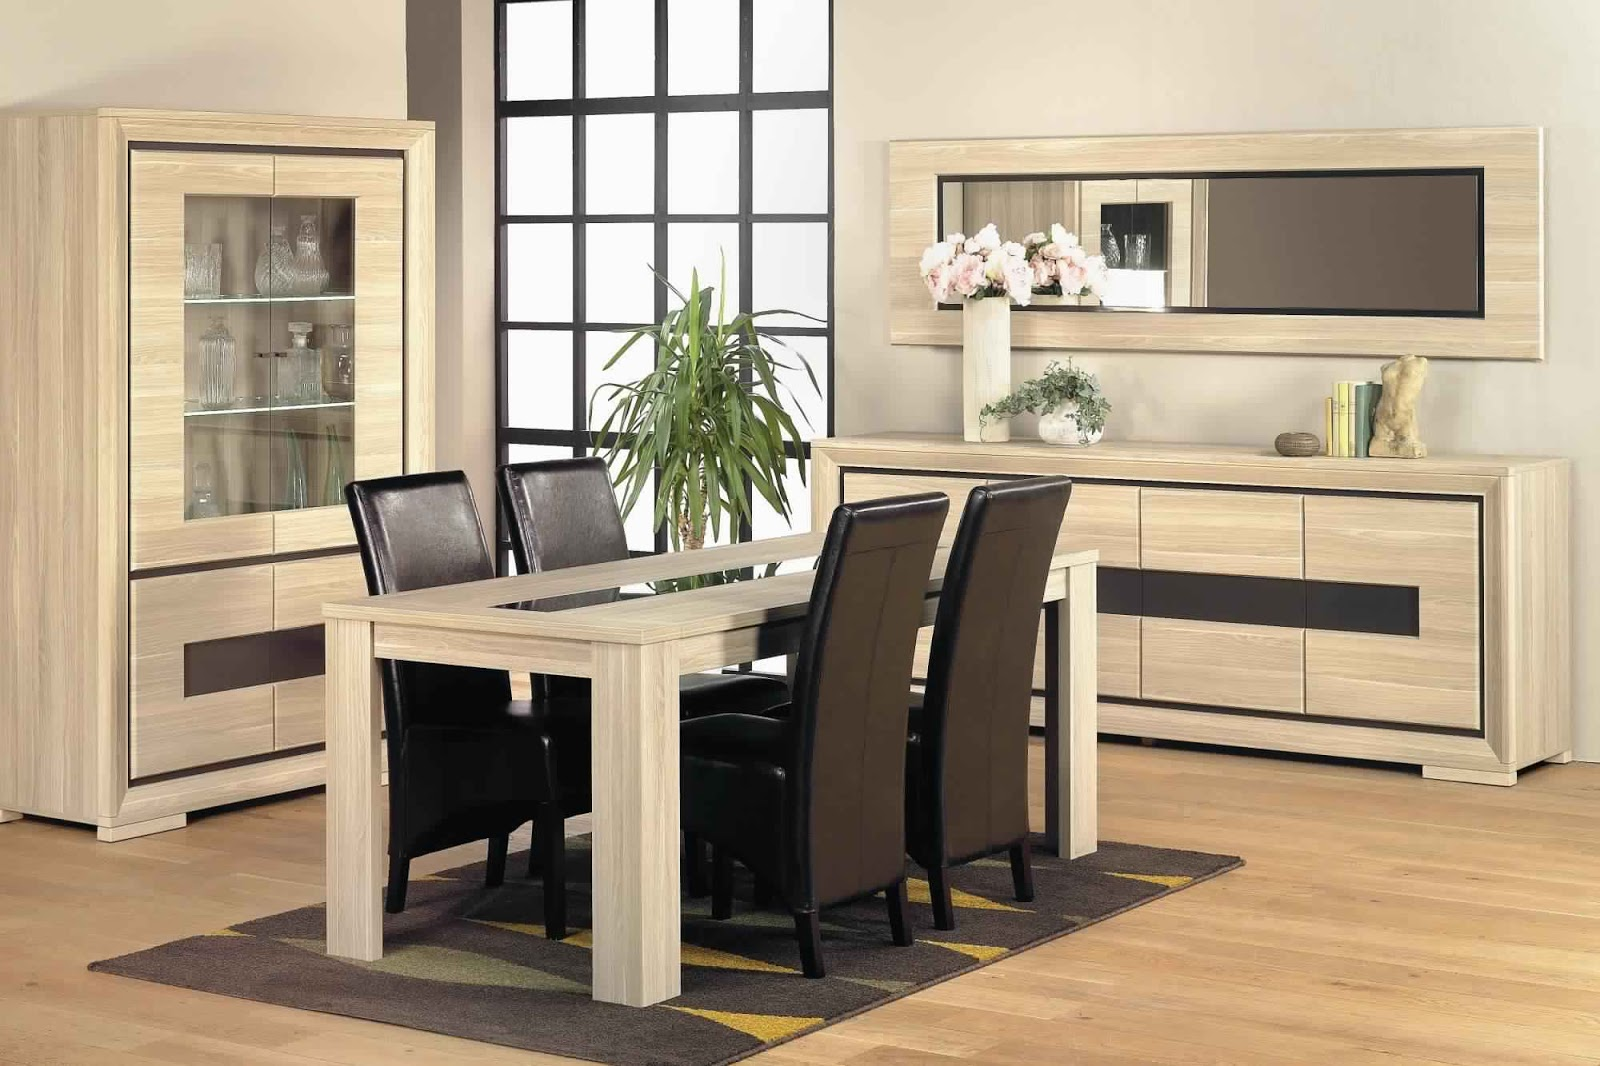 Salle manger conforama for Table salle a manger conforama